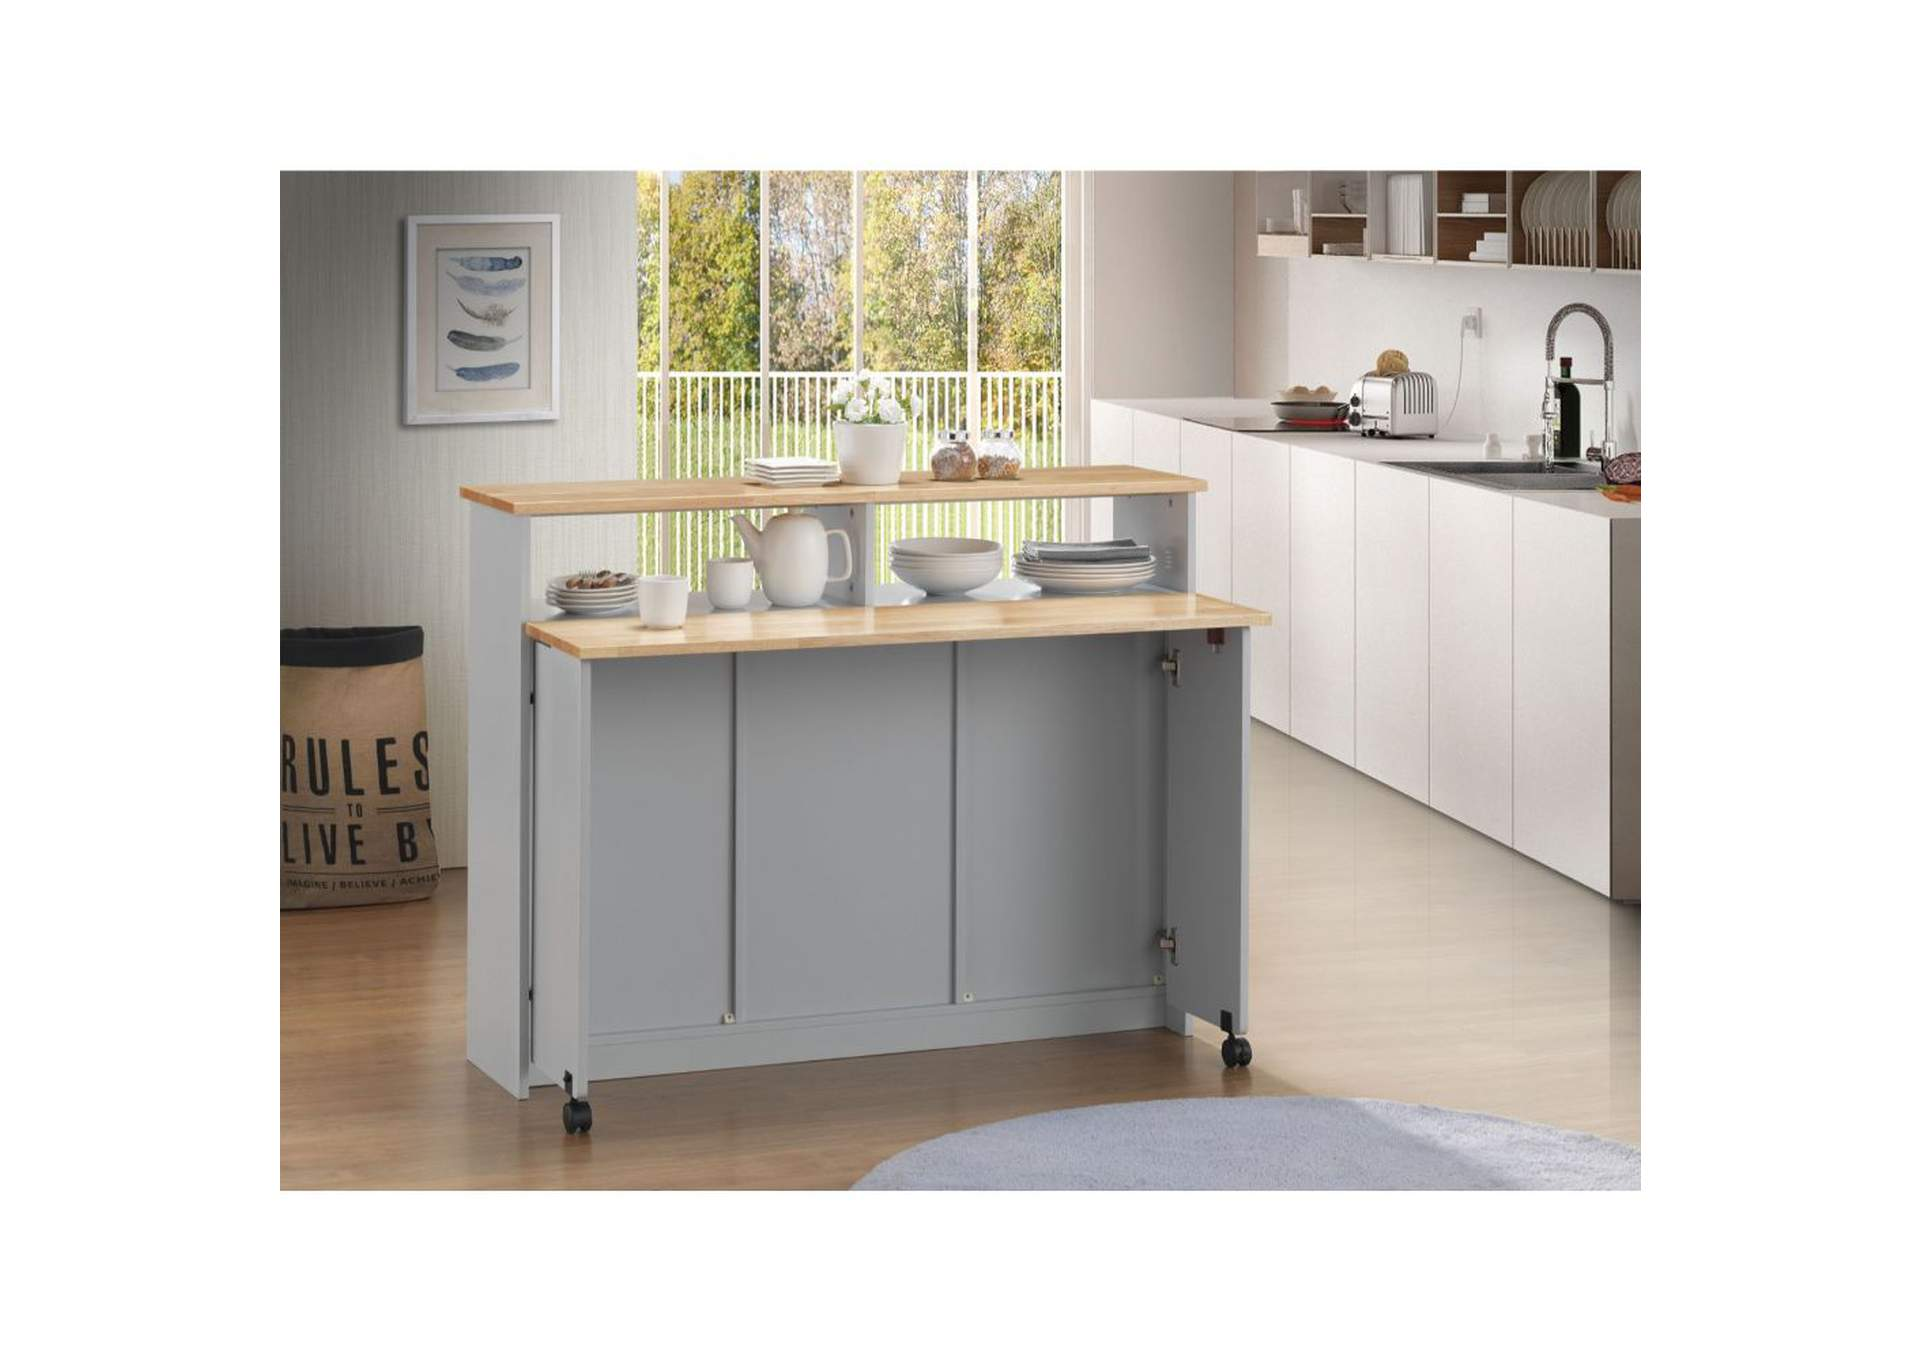 Jorim Natural & Gray Kitchen Cart,Acme